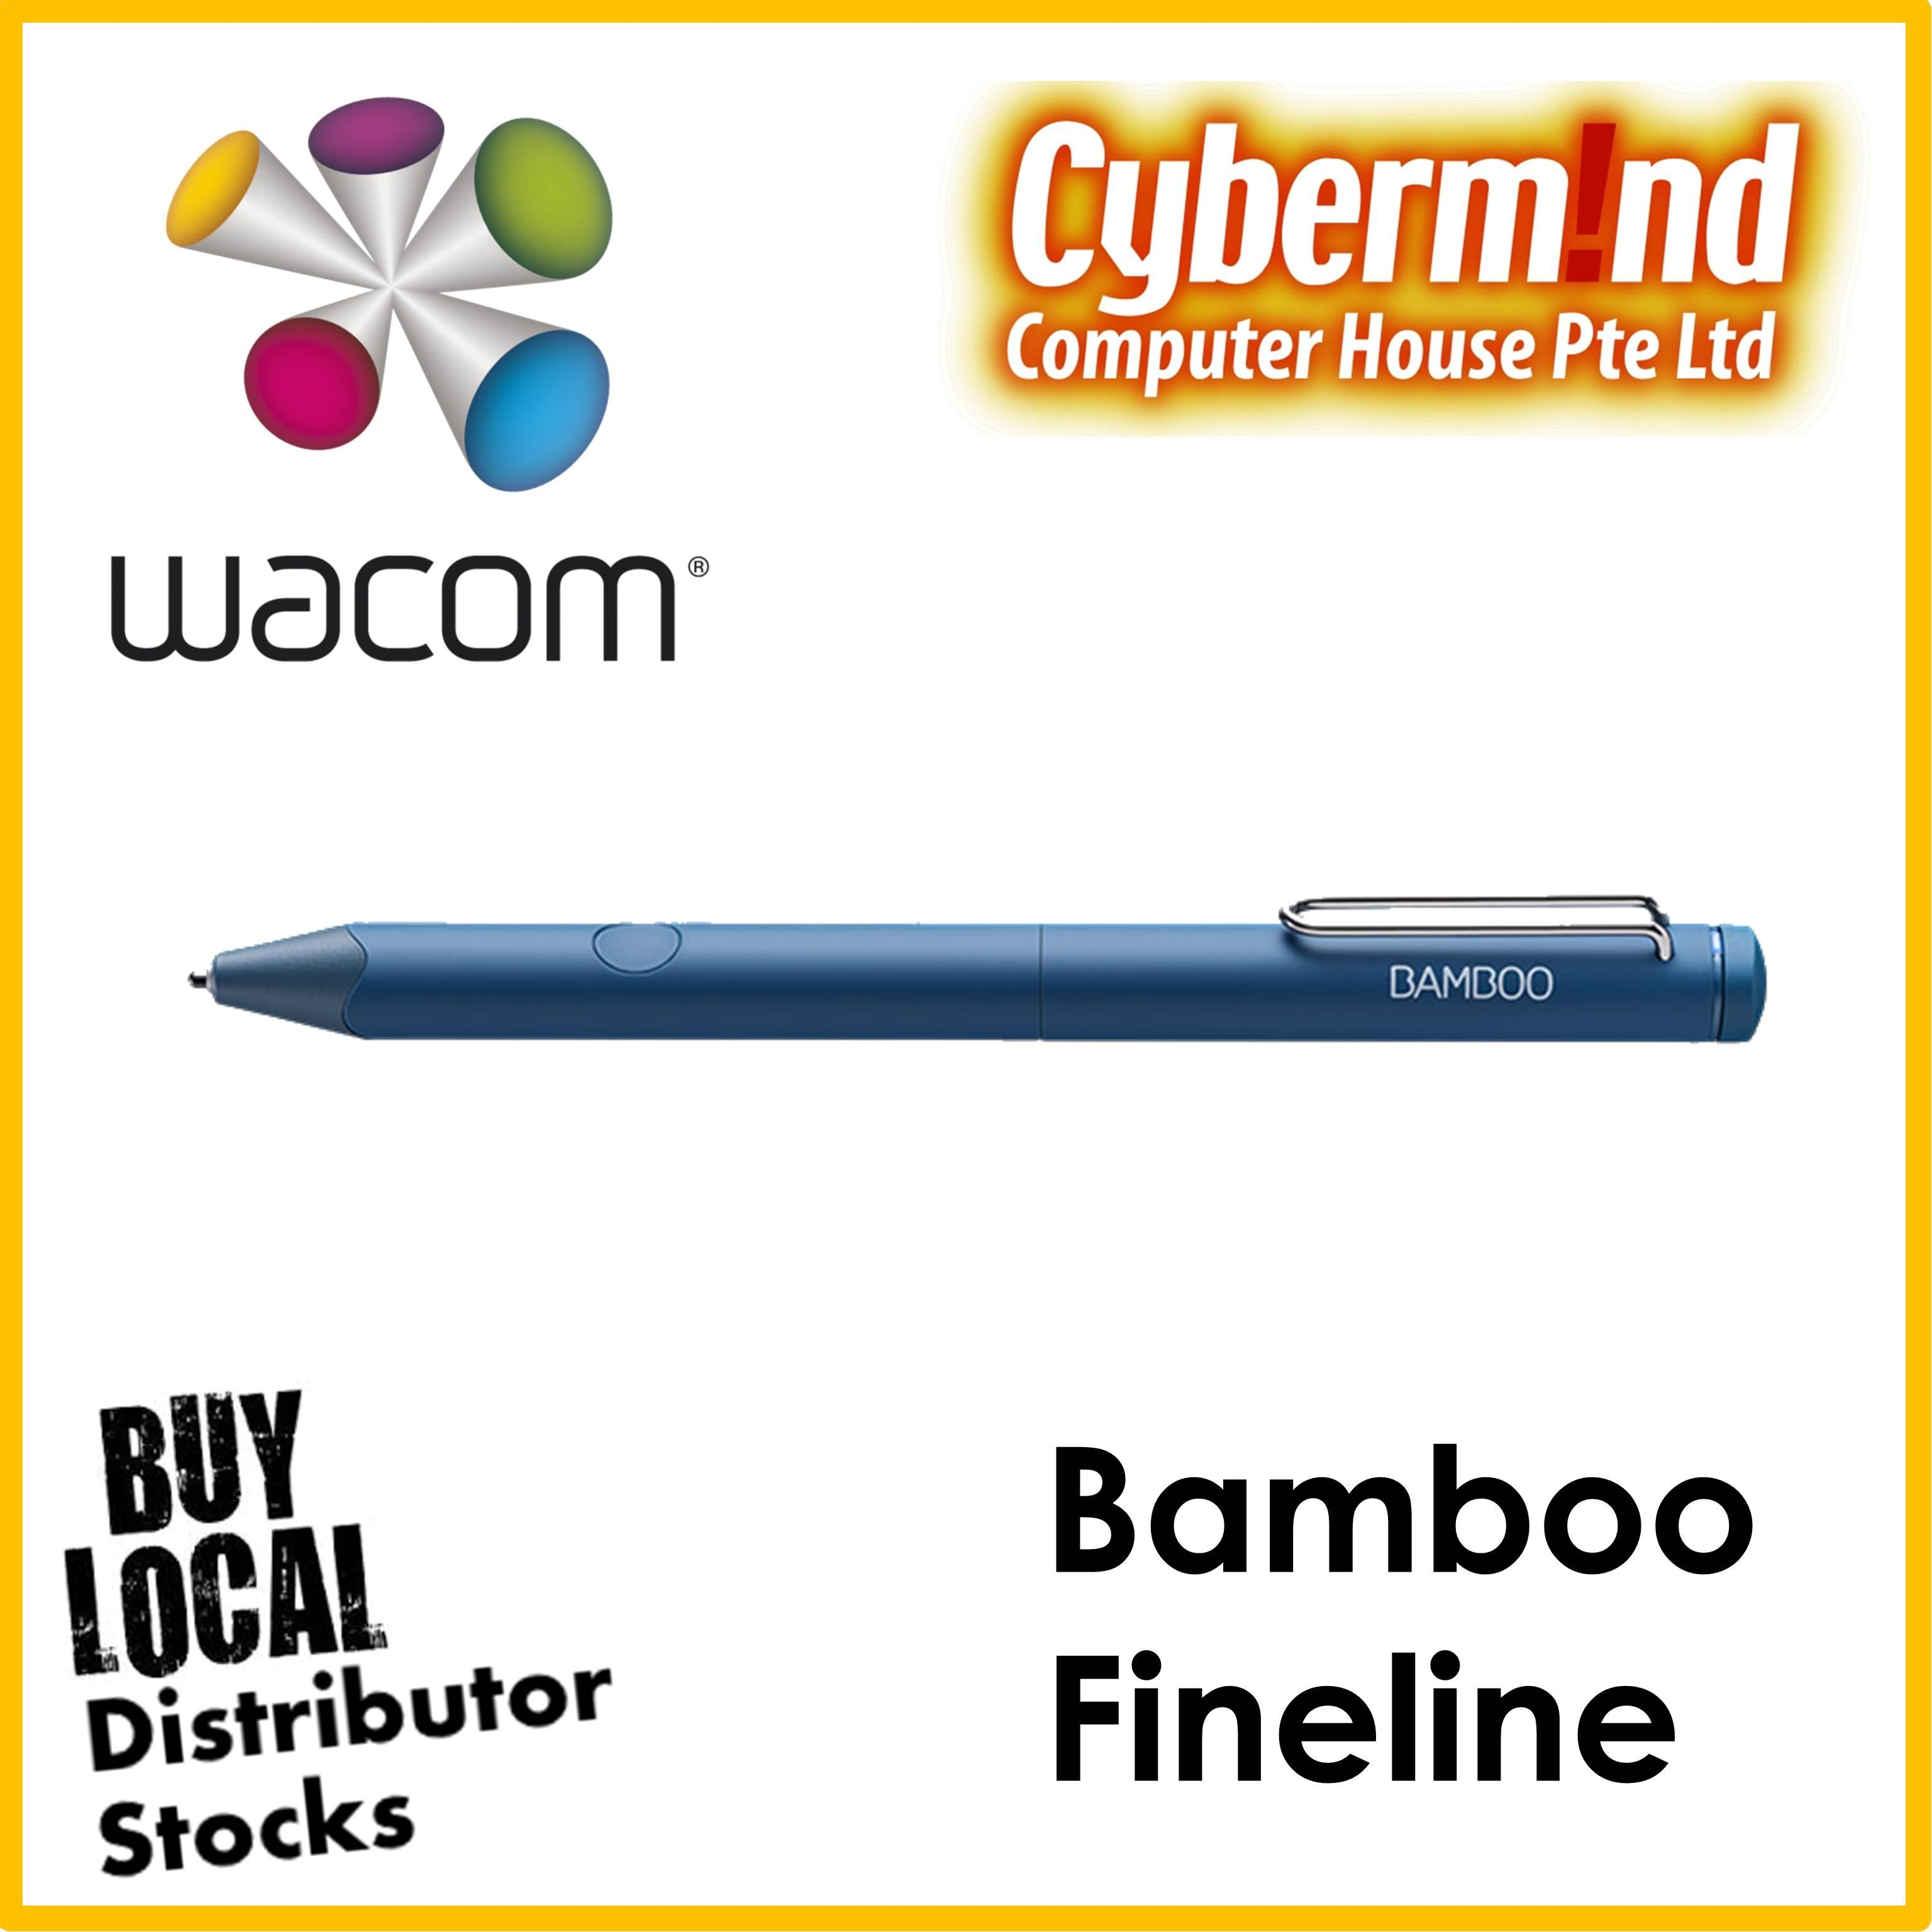 Wacom Bamboo Fineline 3rd Generation (color: Blue Or Black) By Cybermind.